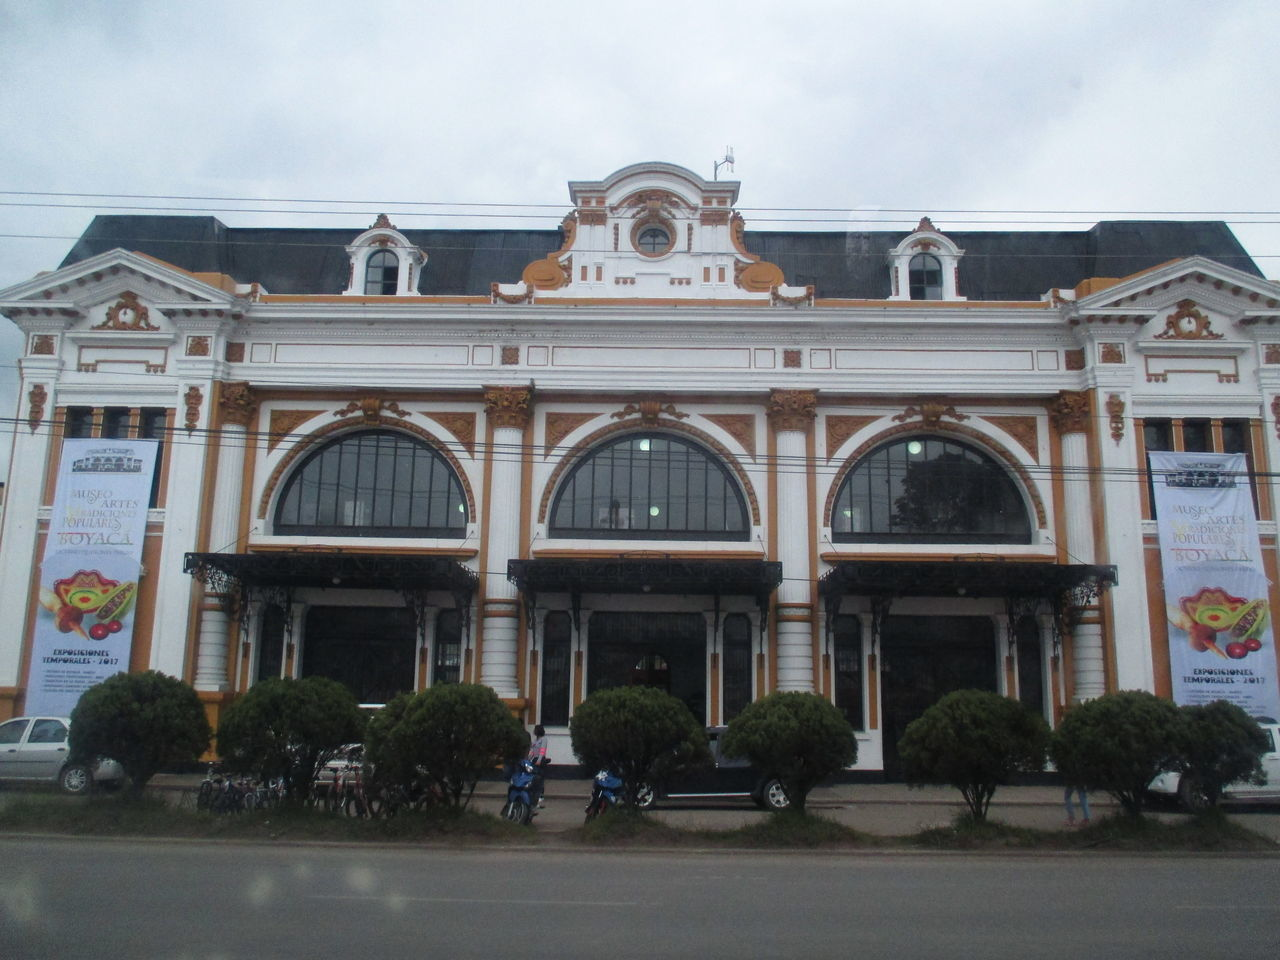 Architecture Arquitectura Arquitecture Building Exterior Built Structure Chiquinquira Day EyeEmNewHere Façade Fotografia History Iglesia Large Group Of People Men Outdoors People Place Of Worship Real People Sculpture Sky Statue Tree Viajar